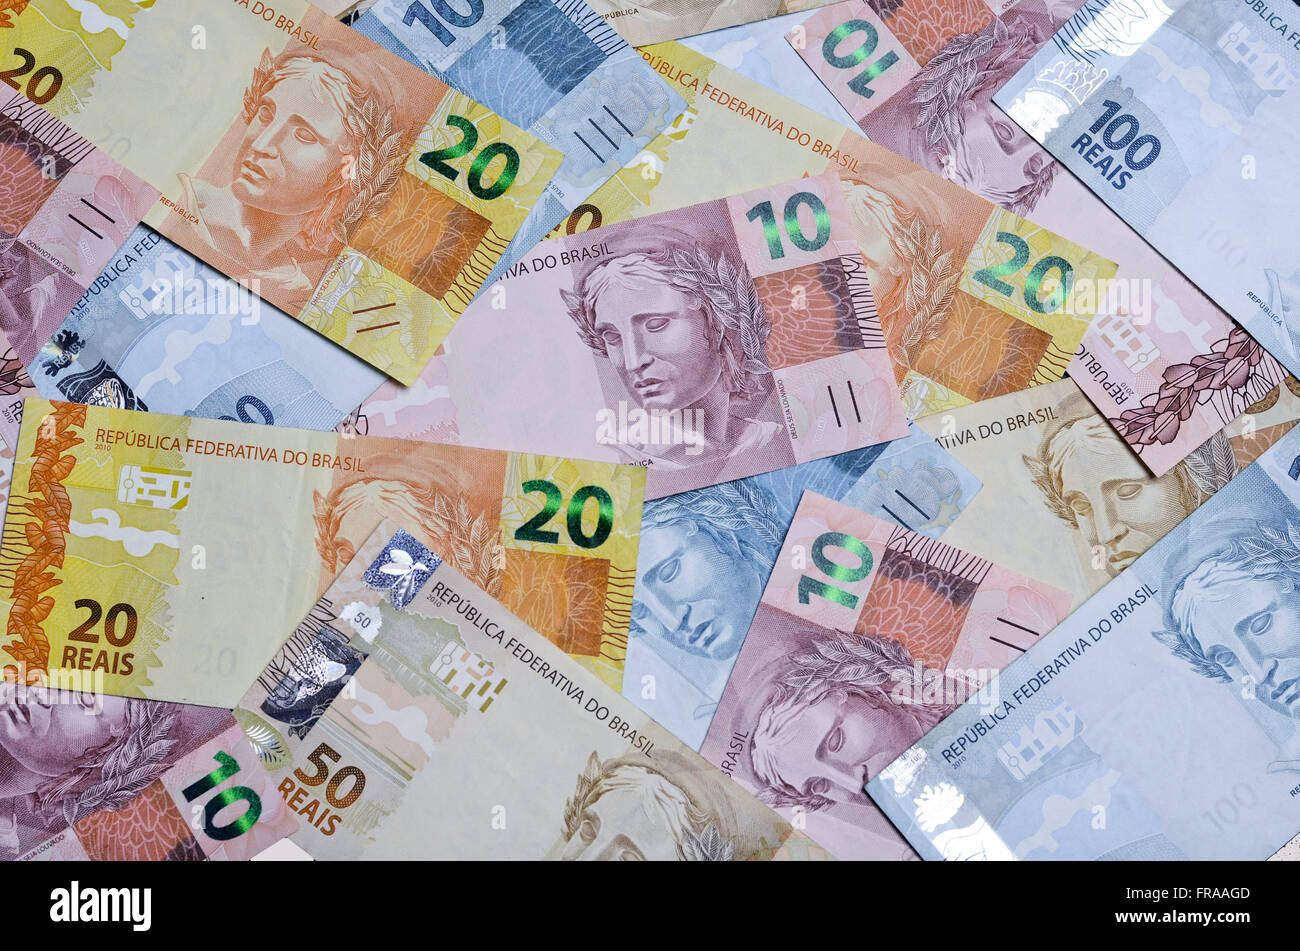 Front of the second ballots of the Royal family - the currency of Brazil - with different sizes - Stock Image